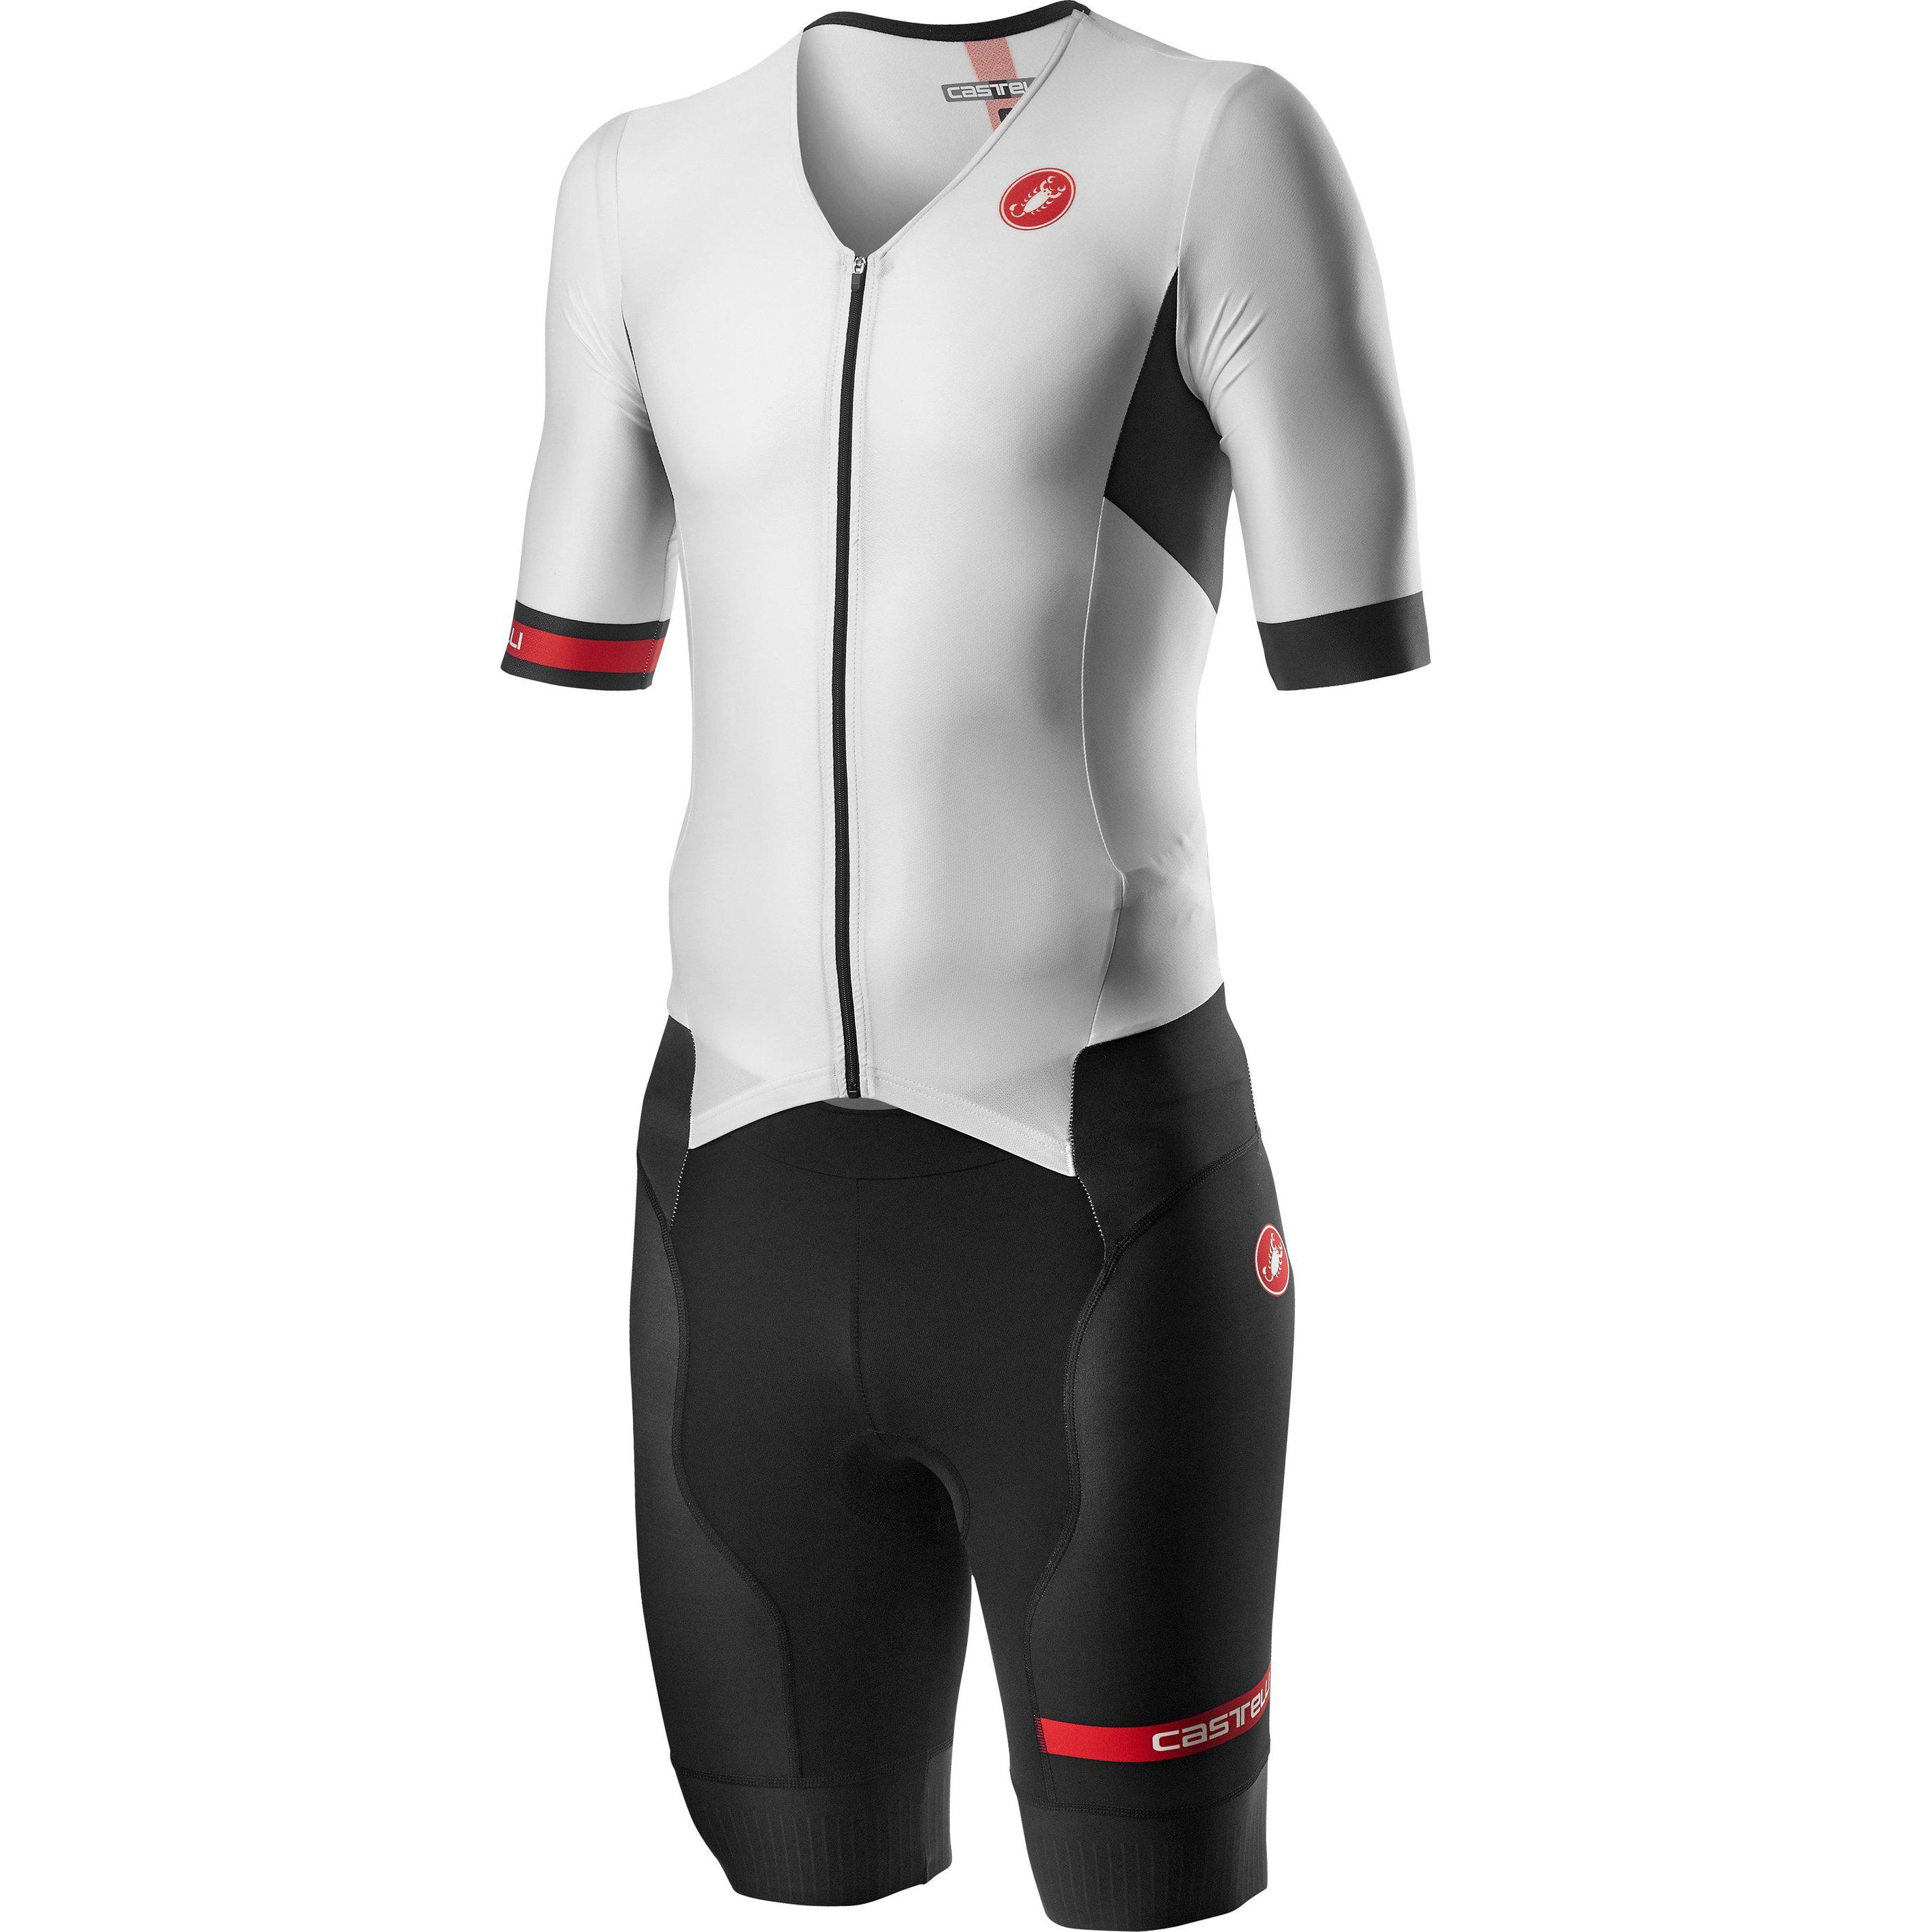 Castelli-Castelli Free Sanremo 2 Suit Short Sleeve-White/Black-S-CS200921012-saddleback-elite-performance-cycling